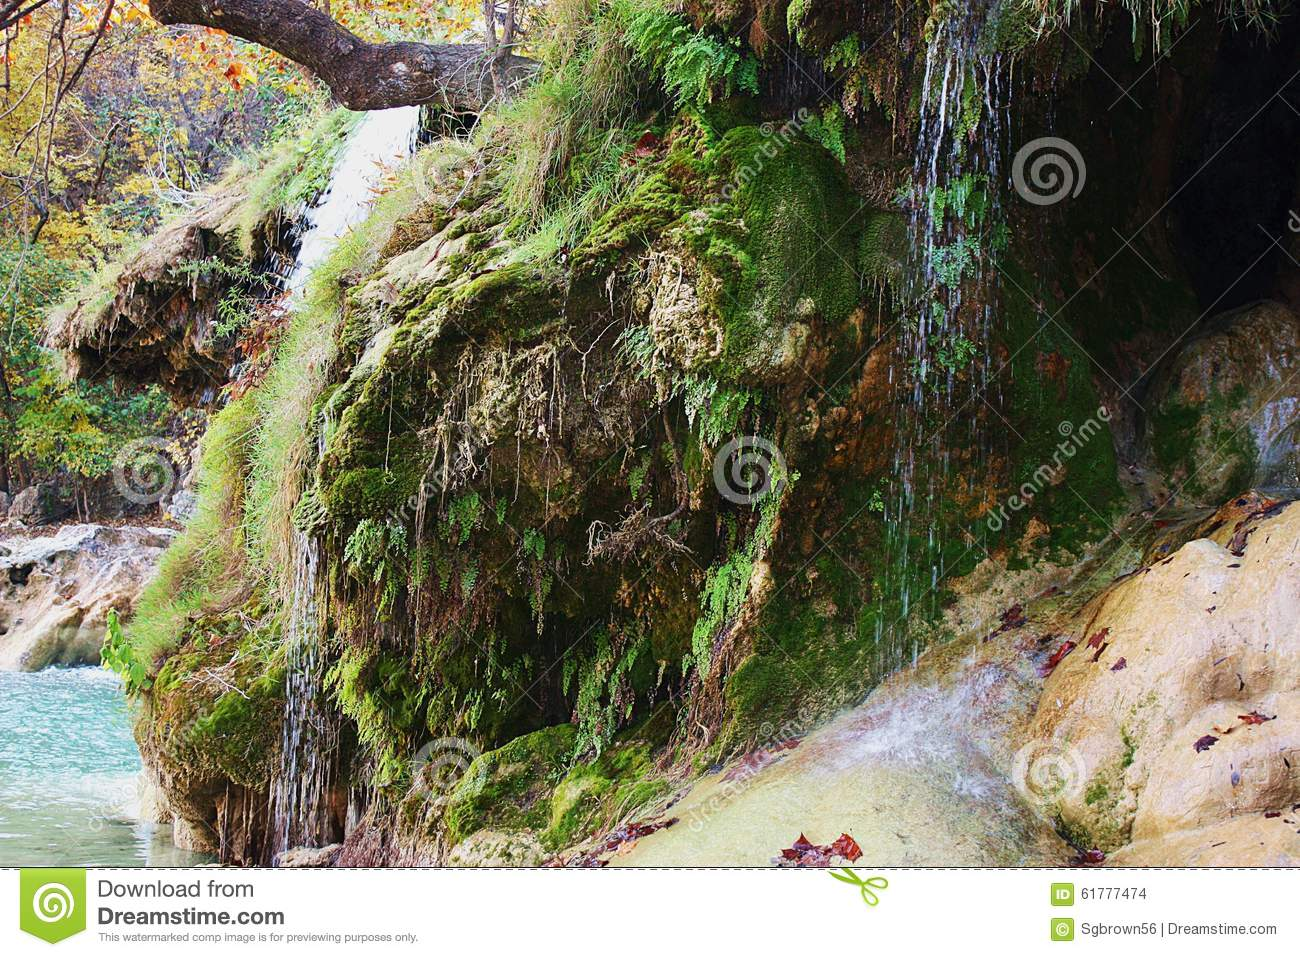 Water Cascading over Moss Covered Rocks